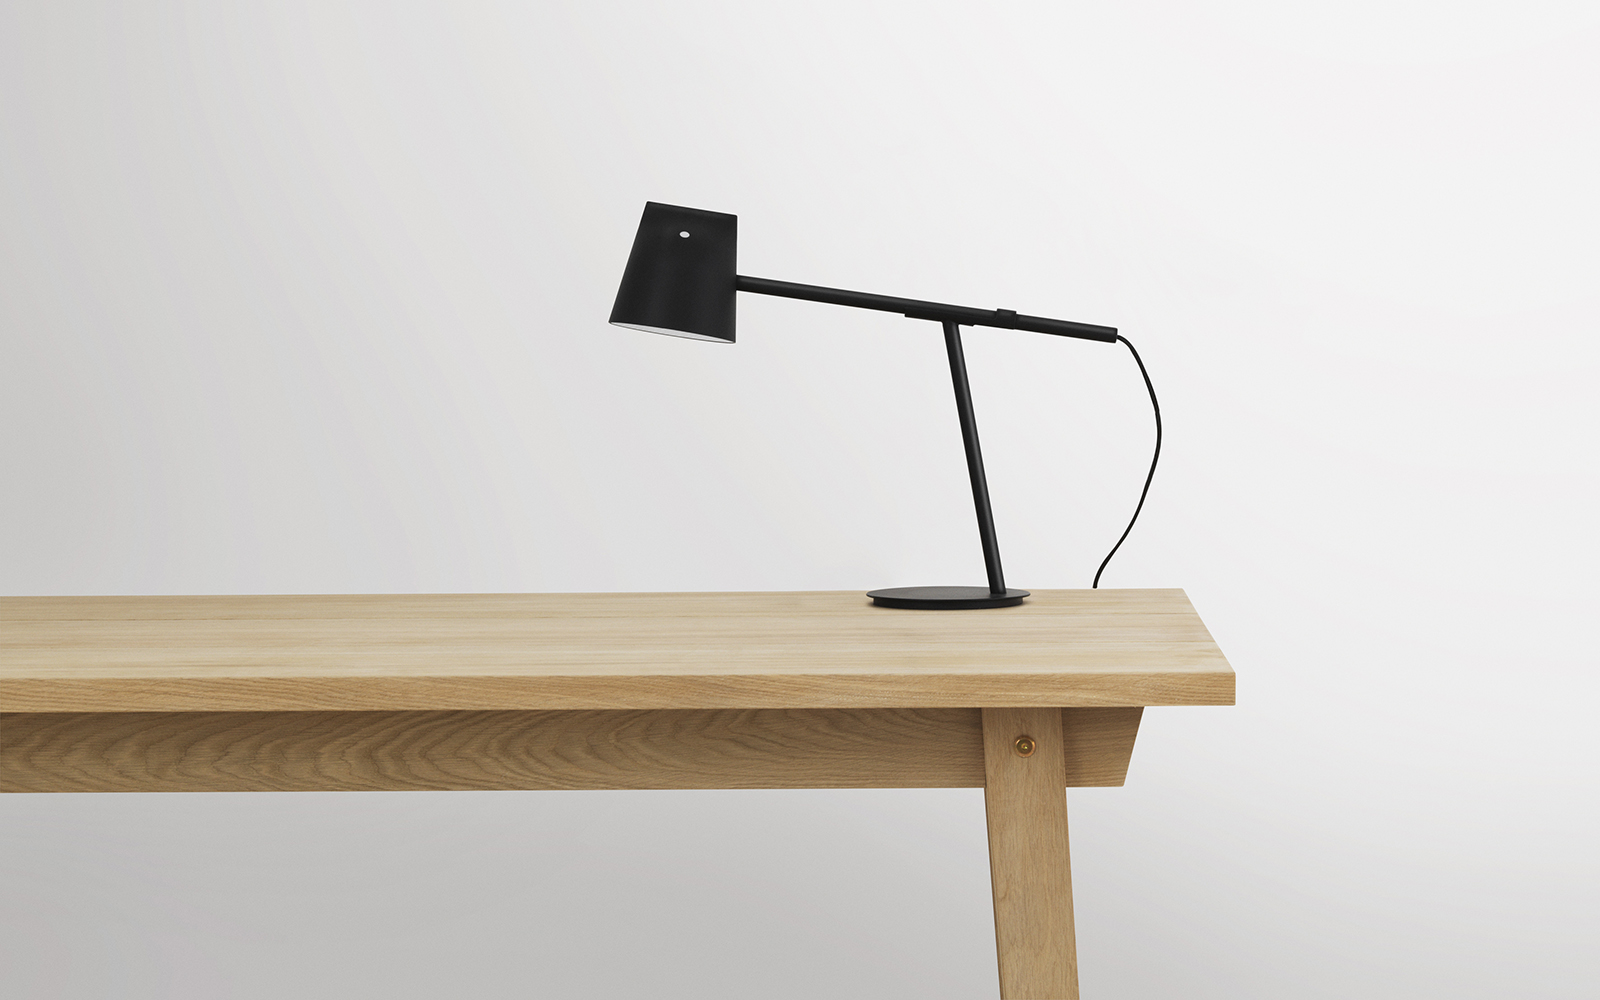 lamp office. The Momento LED Table Lamp Is Designer Duo\u0027s Idea Of A New And Simplified Version Classic Office Lamp: Typical Technical